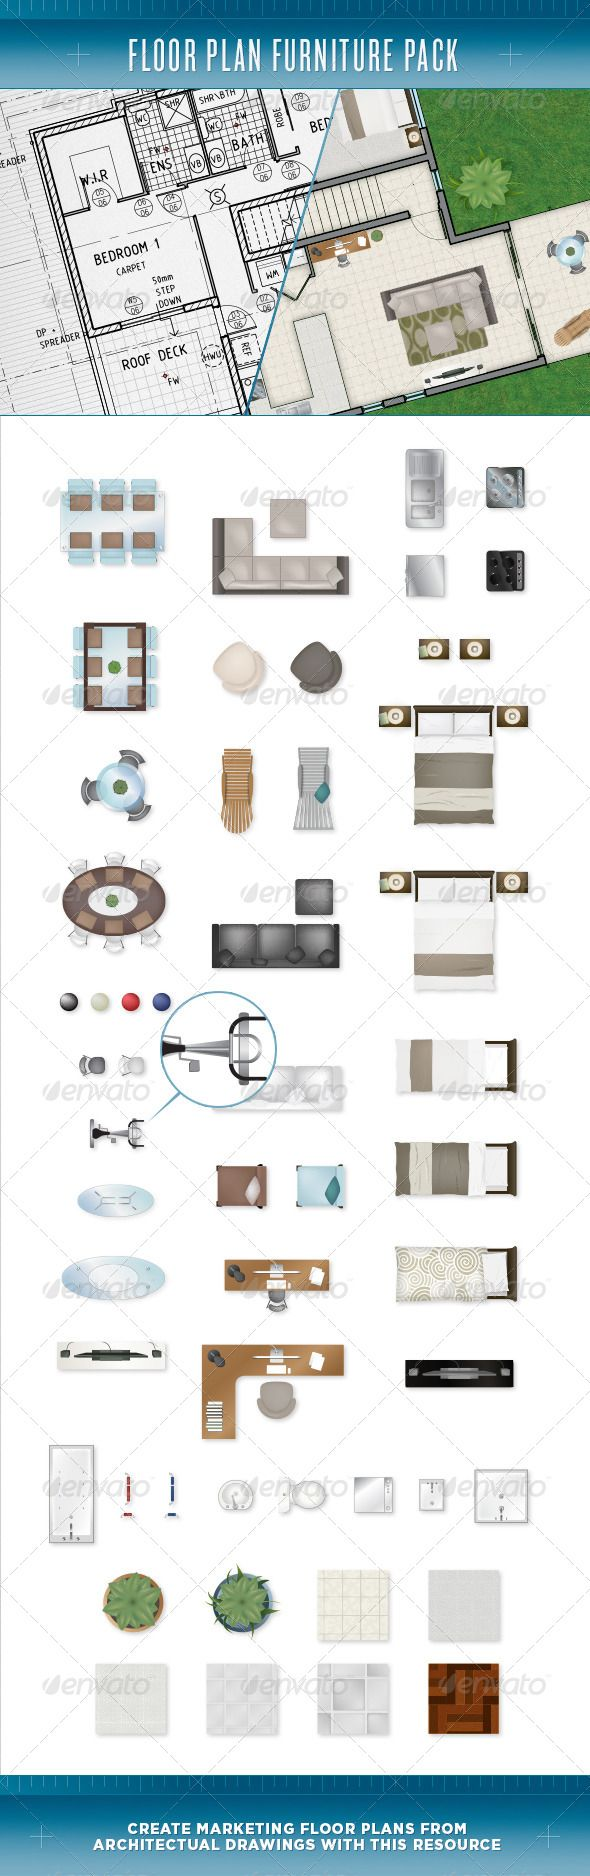 Floor plan furniture pack televisions house and photoshop for Floor plan furniture